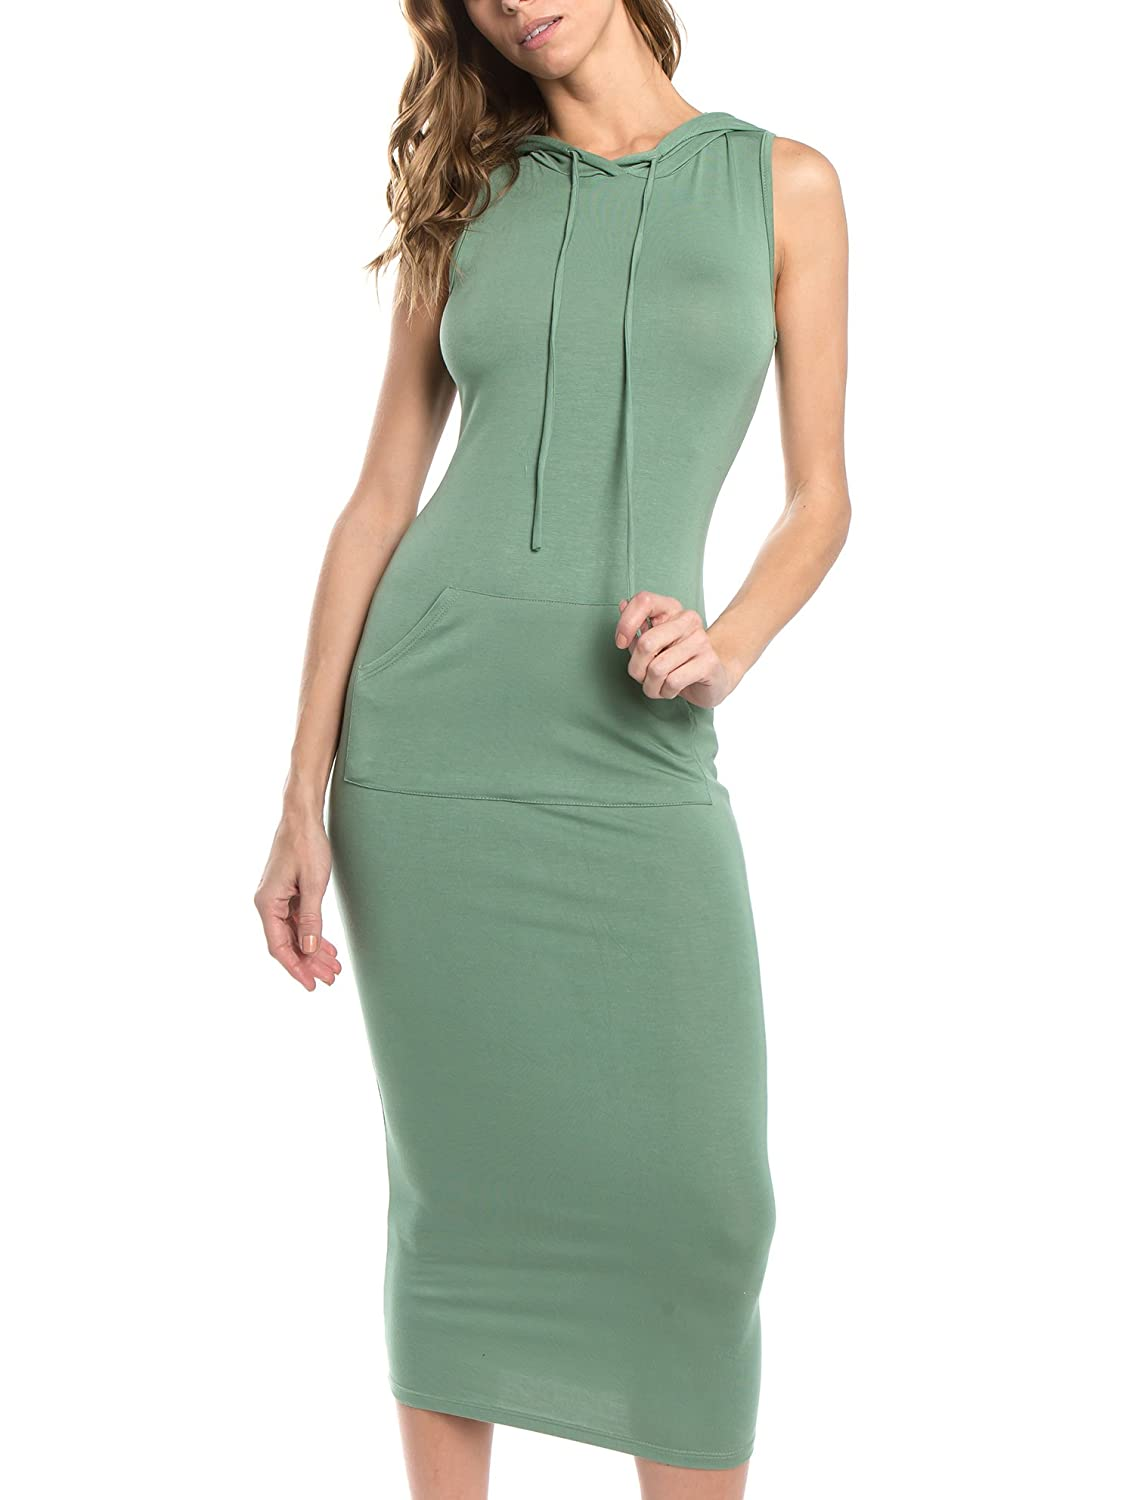 Sage Bubble B Women's Hooded Sleeveless Long Bodycon Dress  Size S to 3X